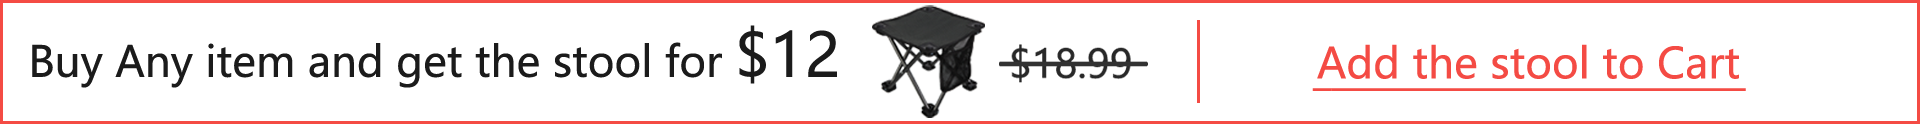 Buy any item and get the stool for $12